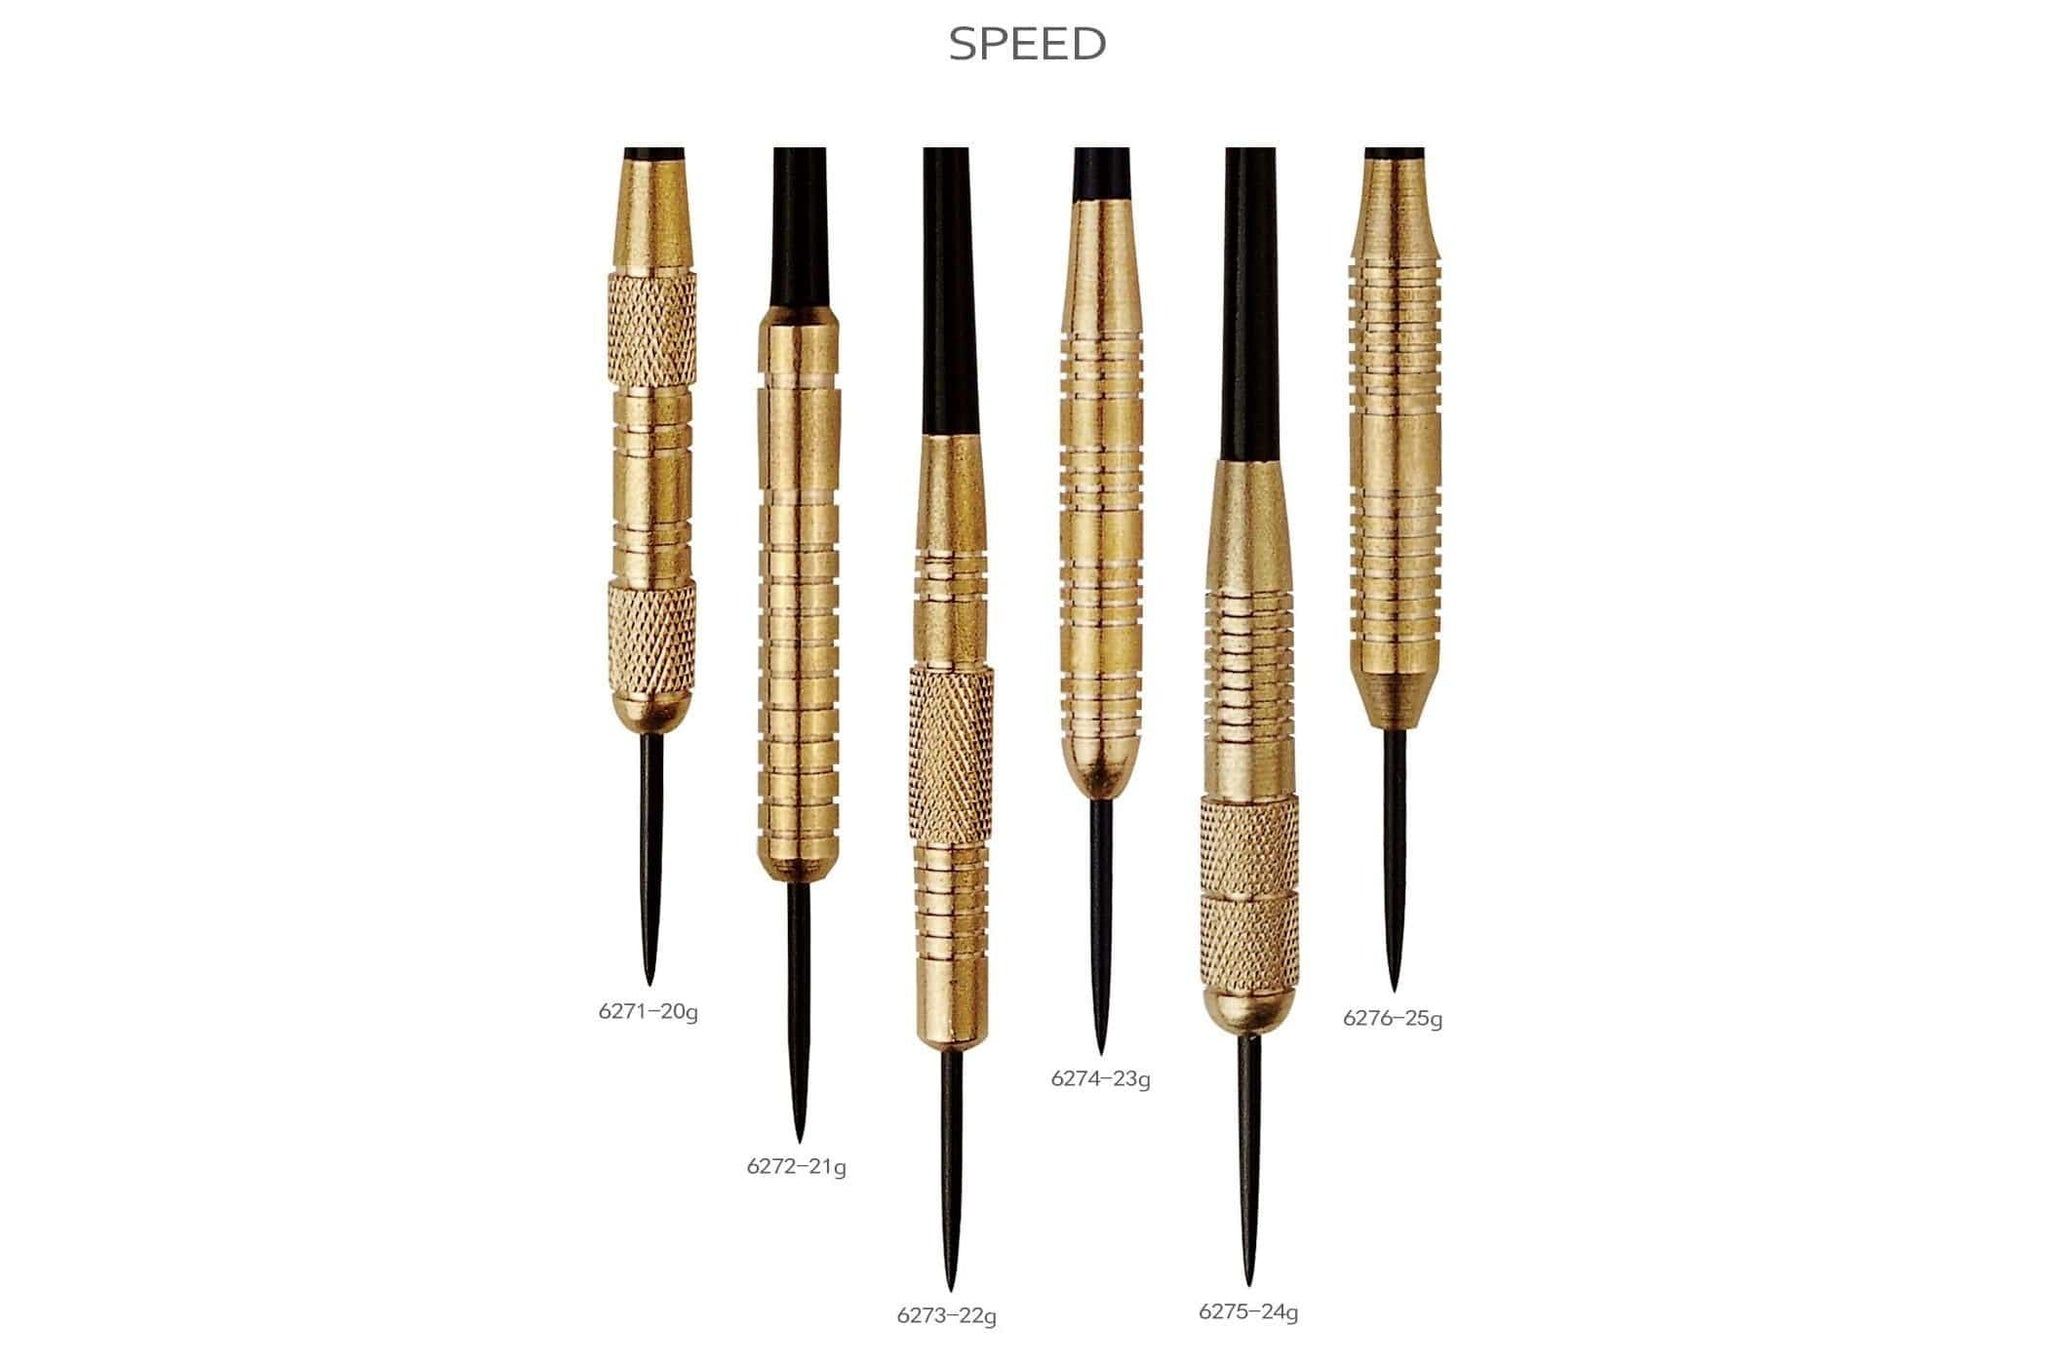 One80 Darts Speed Dart Free Shipping Australia Darts Direct Buy Online Brass Steel Darts Shafts Barrels Points